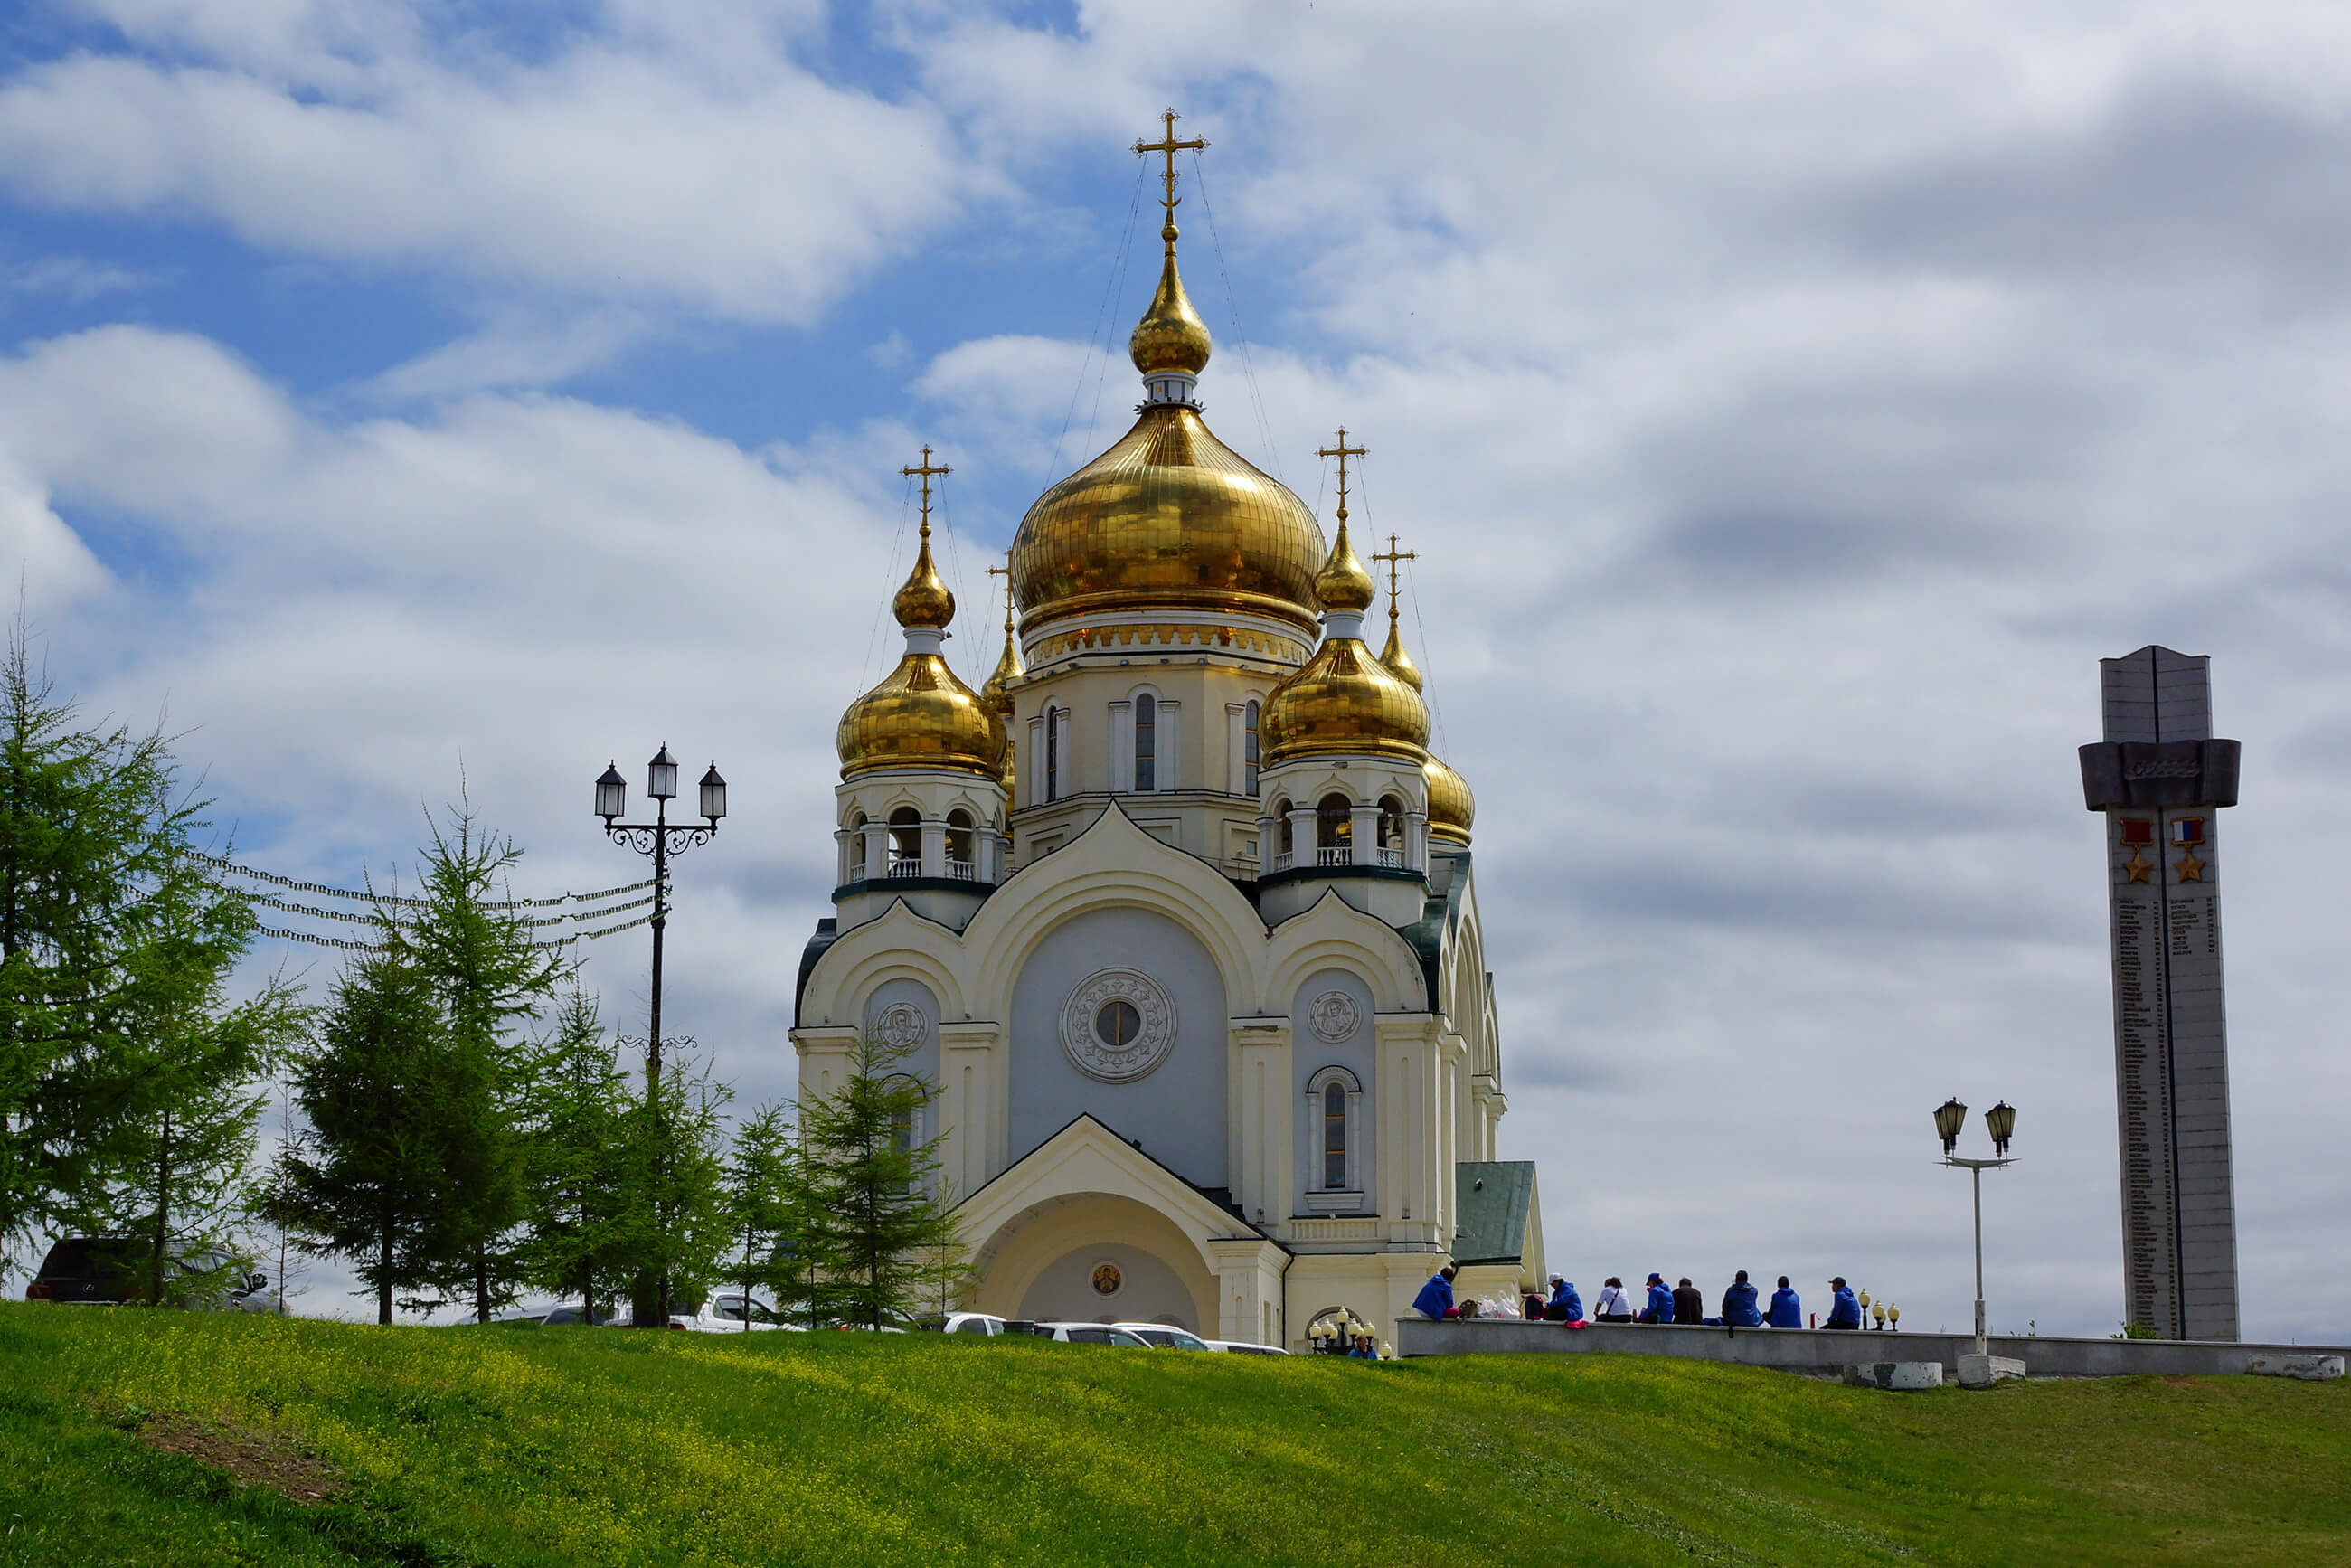 https://bubo.sk/uploads/galleries/16268/rusko_chabarovsk_cathedral-885670.jpg